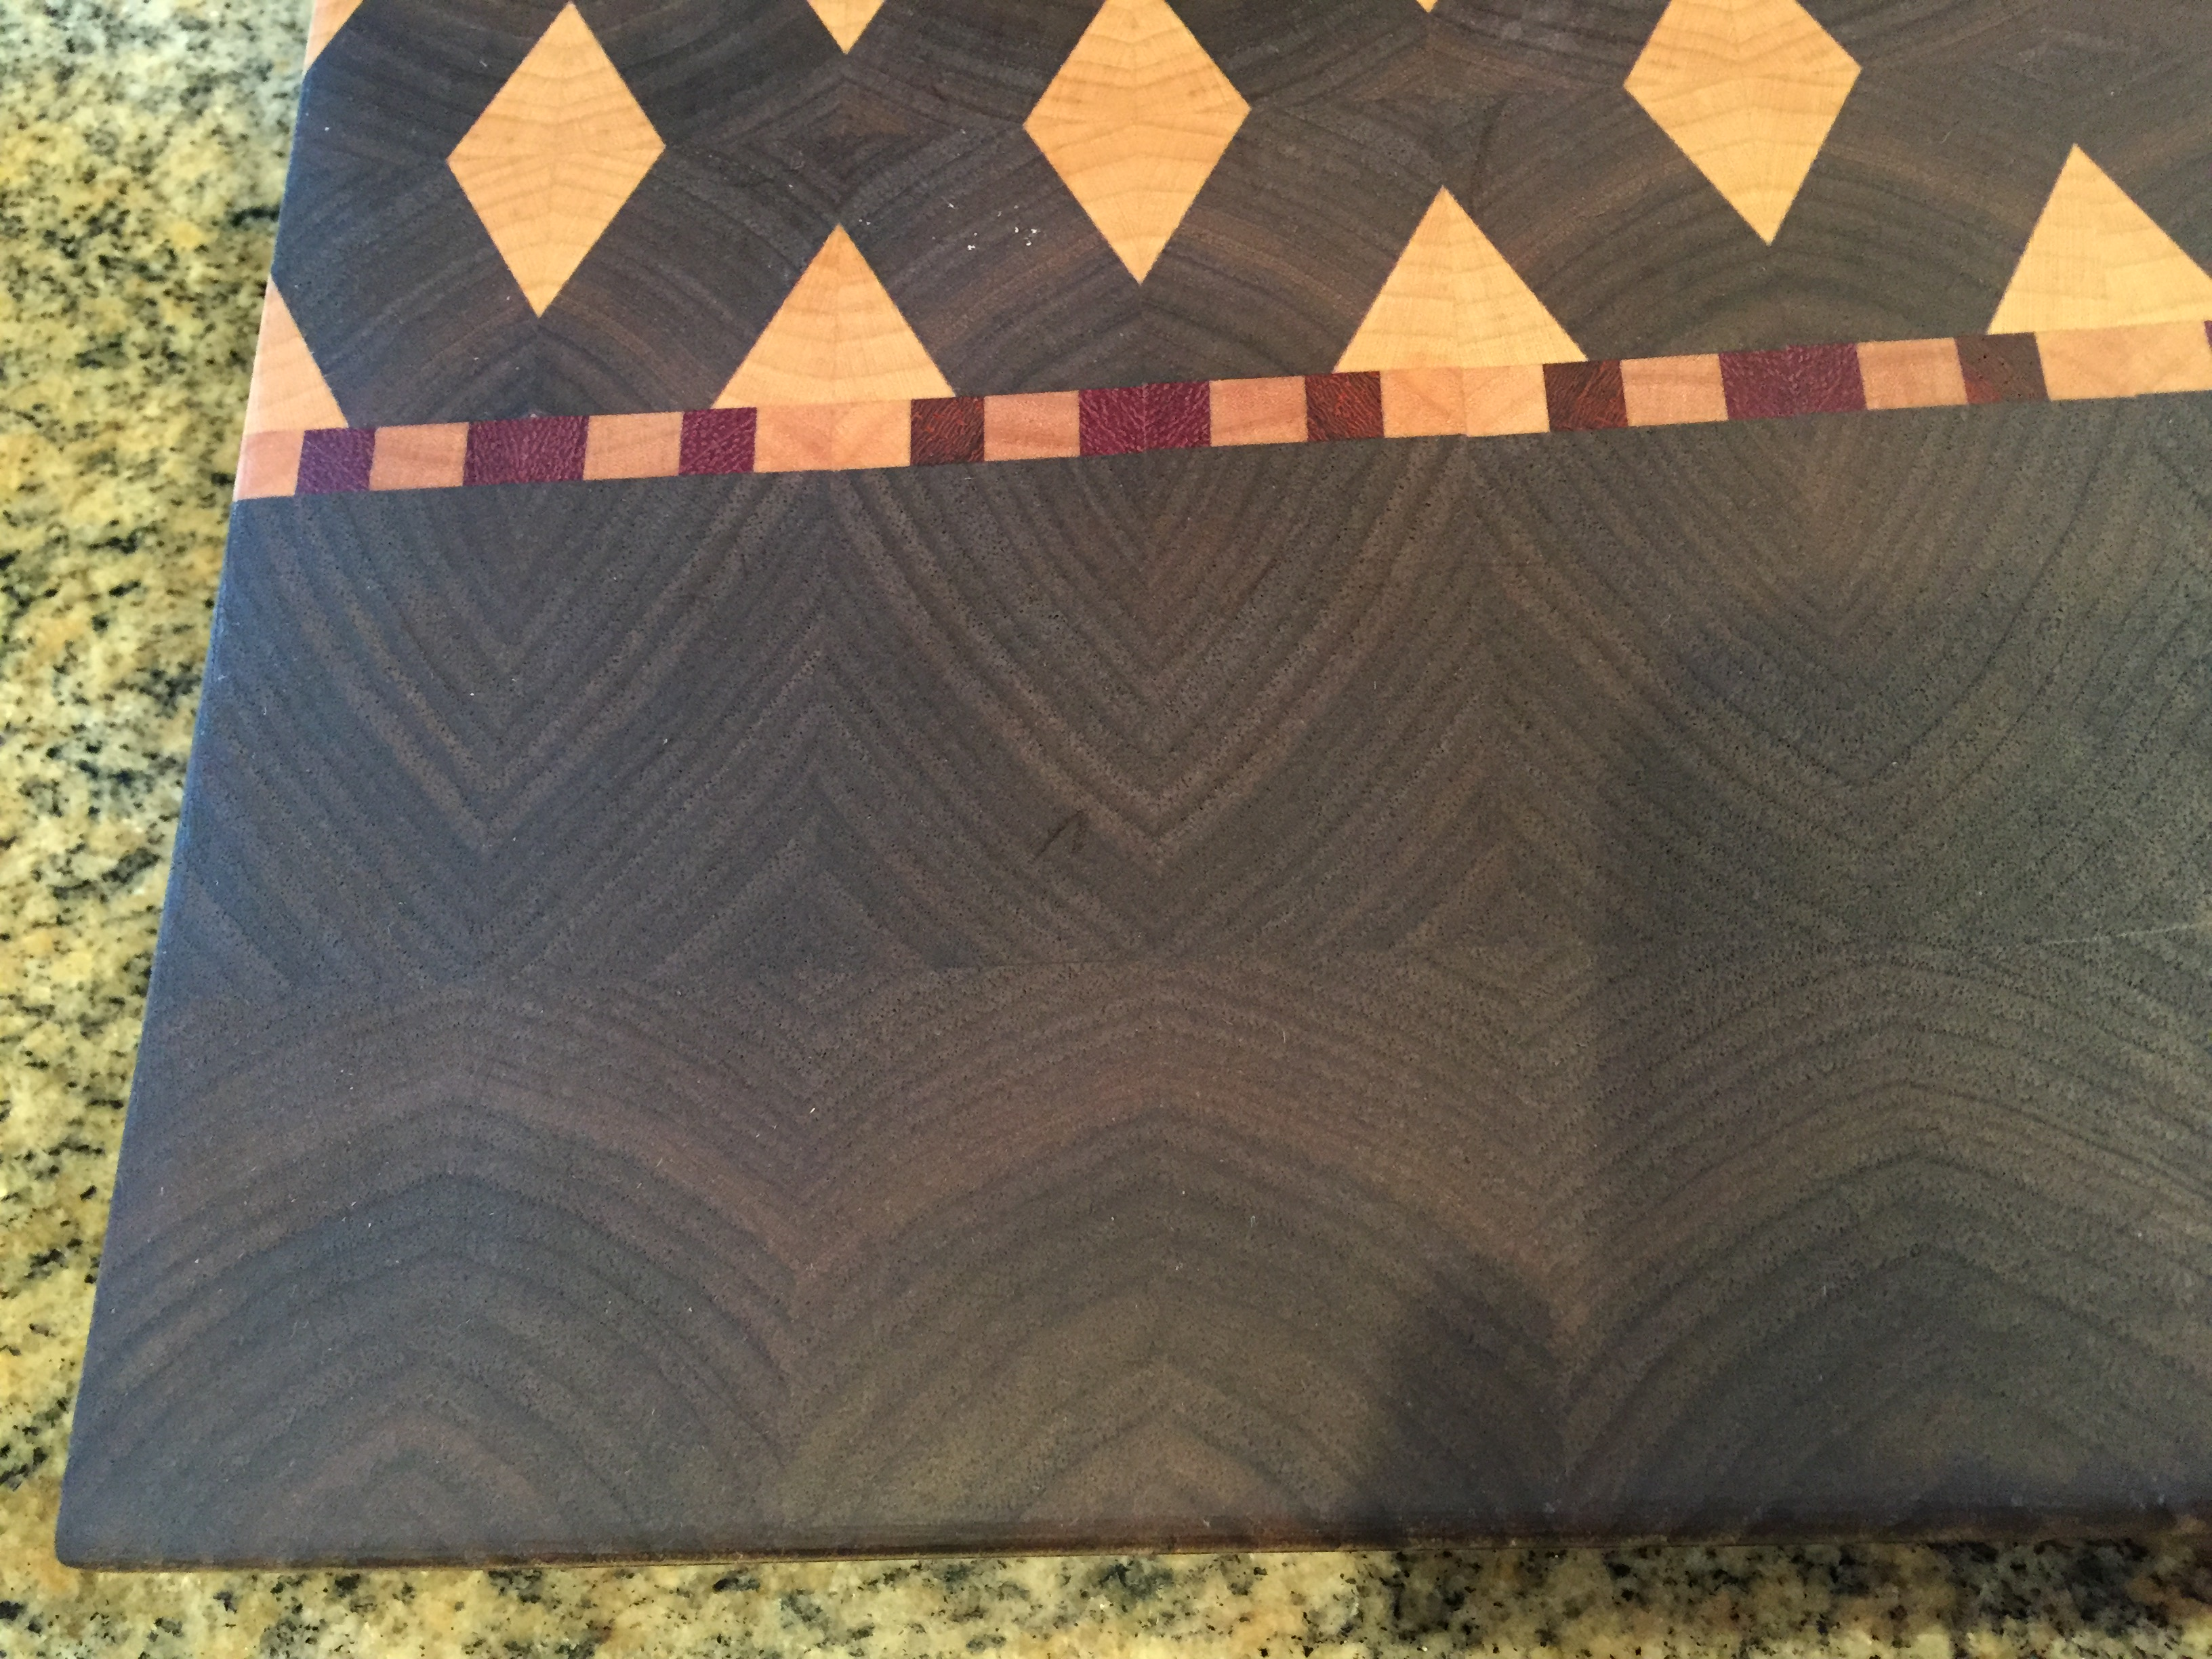 #6 Serving/cutting board geometric design